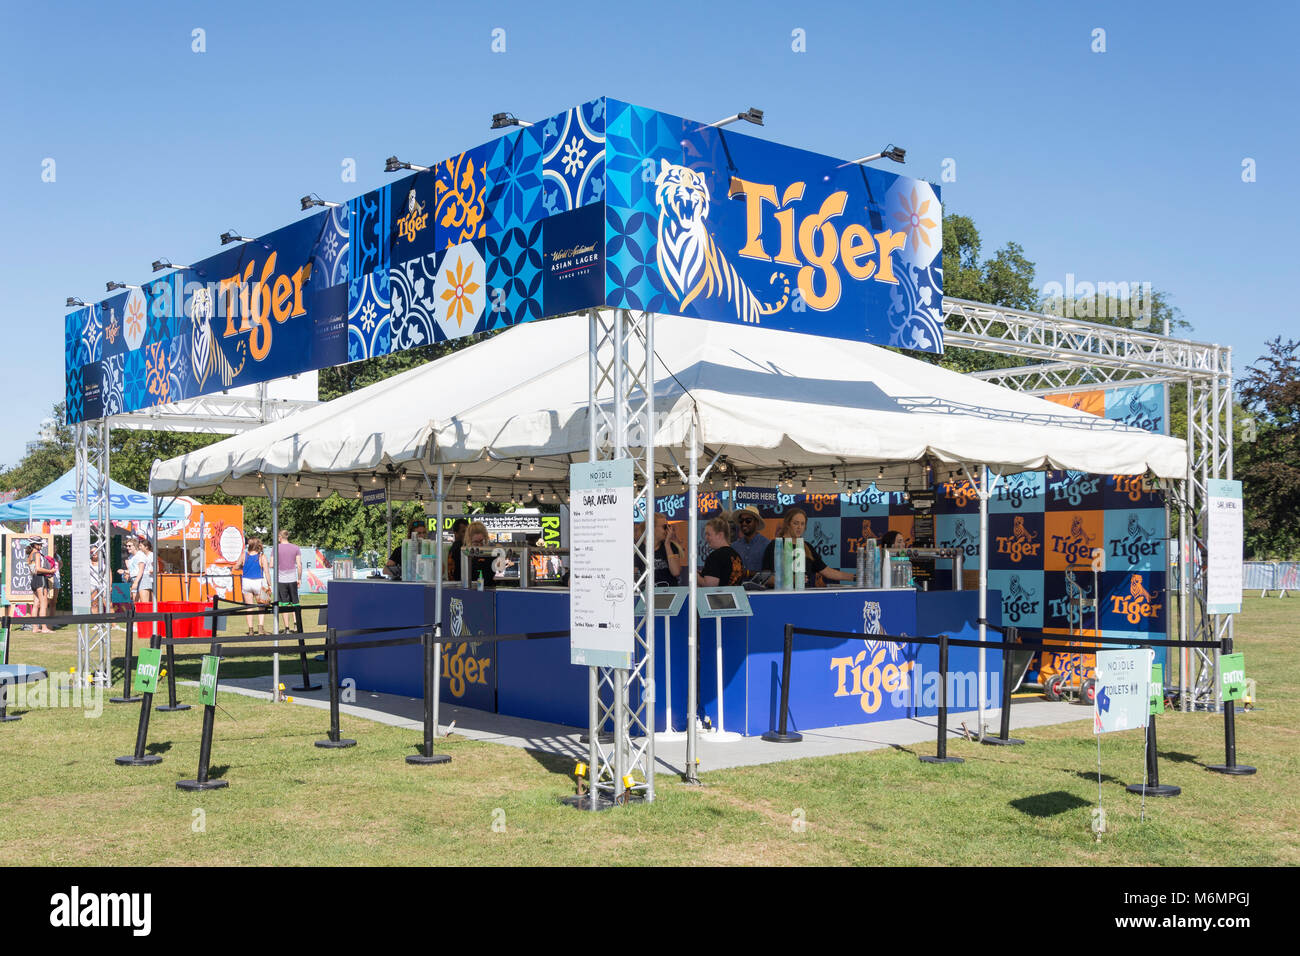 Tiger Beer tent at 'Noodle night markets' event in North Hagley Park, Christchurch, Canterbury, New Zealand - Stock Image